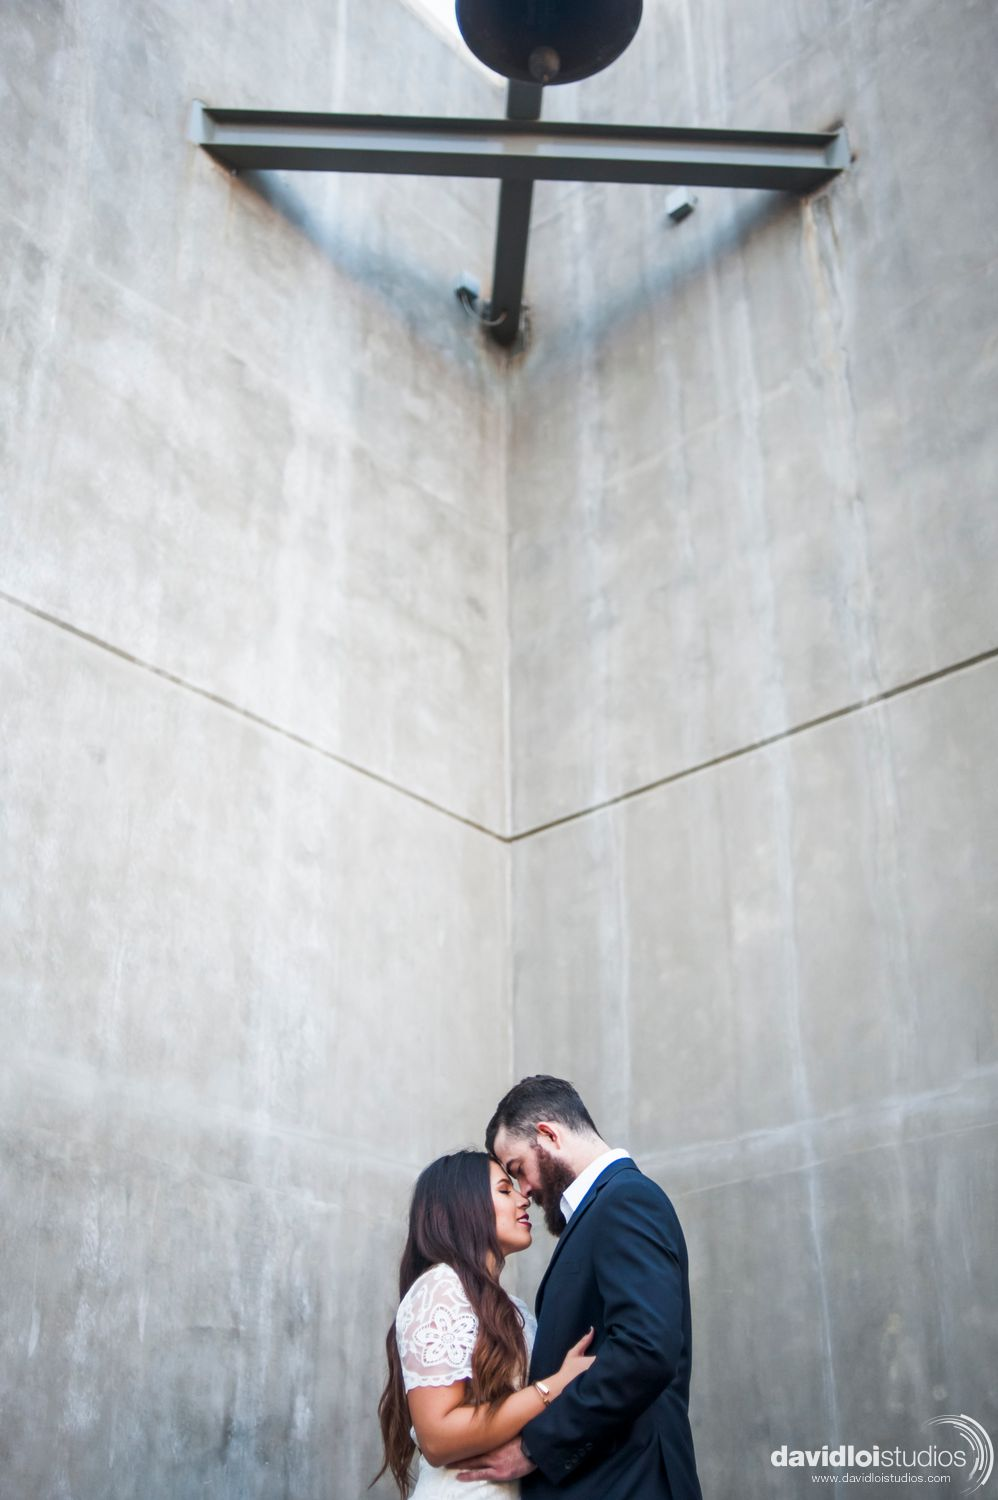 508 Park Engagement Session Dallas TX - 11.jpg